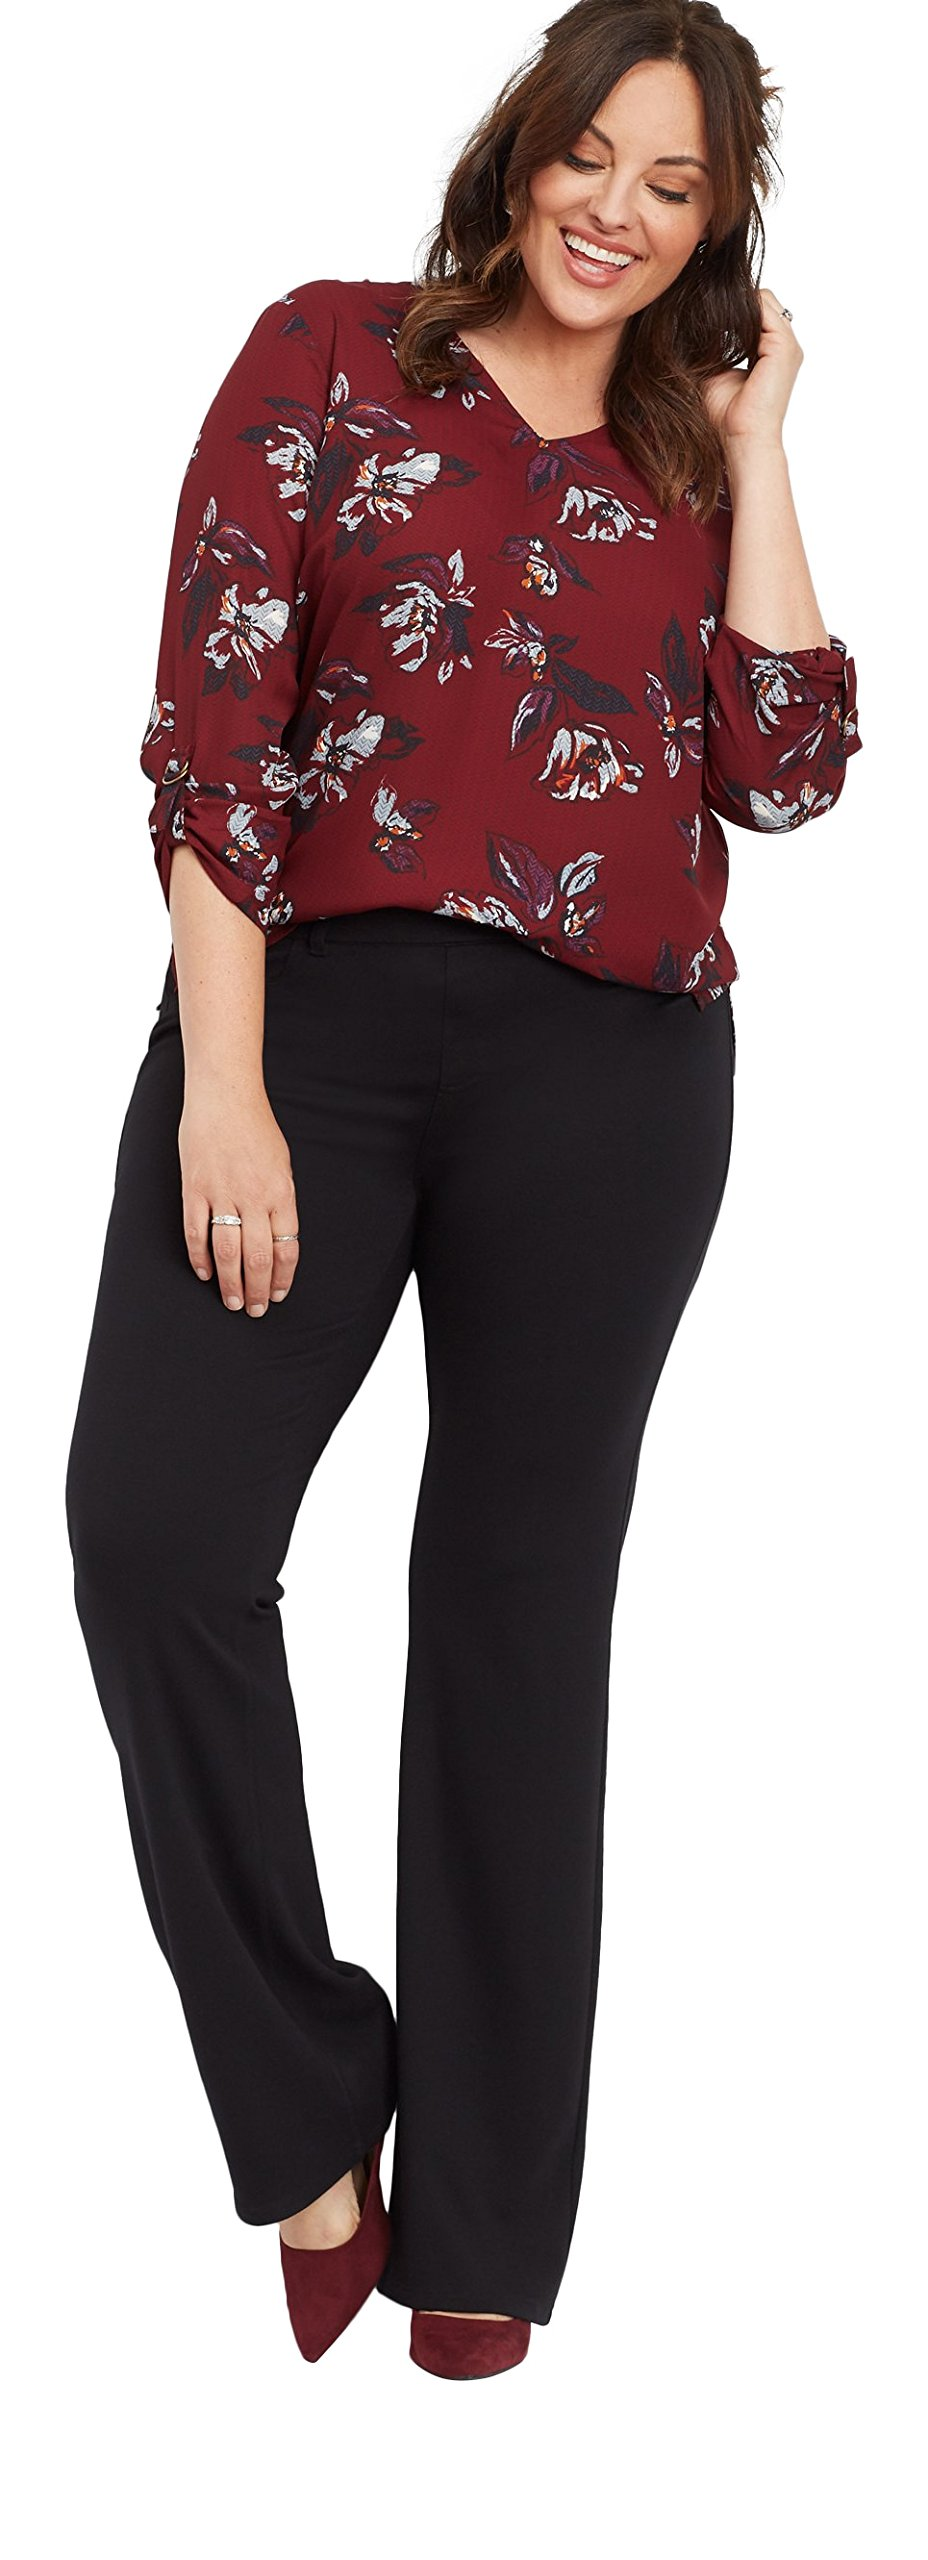 maurices Women's Plus Size Pull On Black Ponte Bootcut Pant 16W Active Black